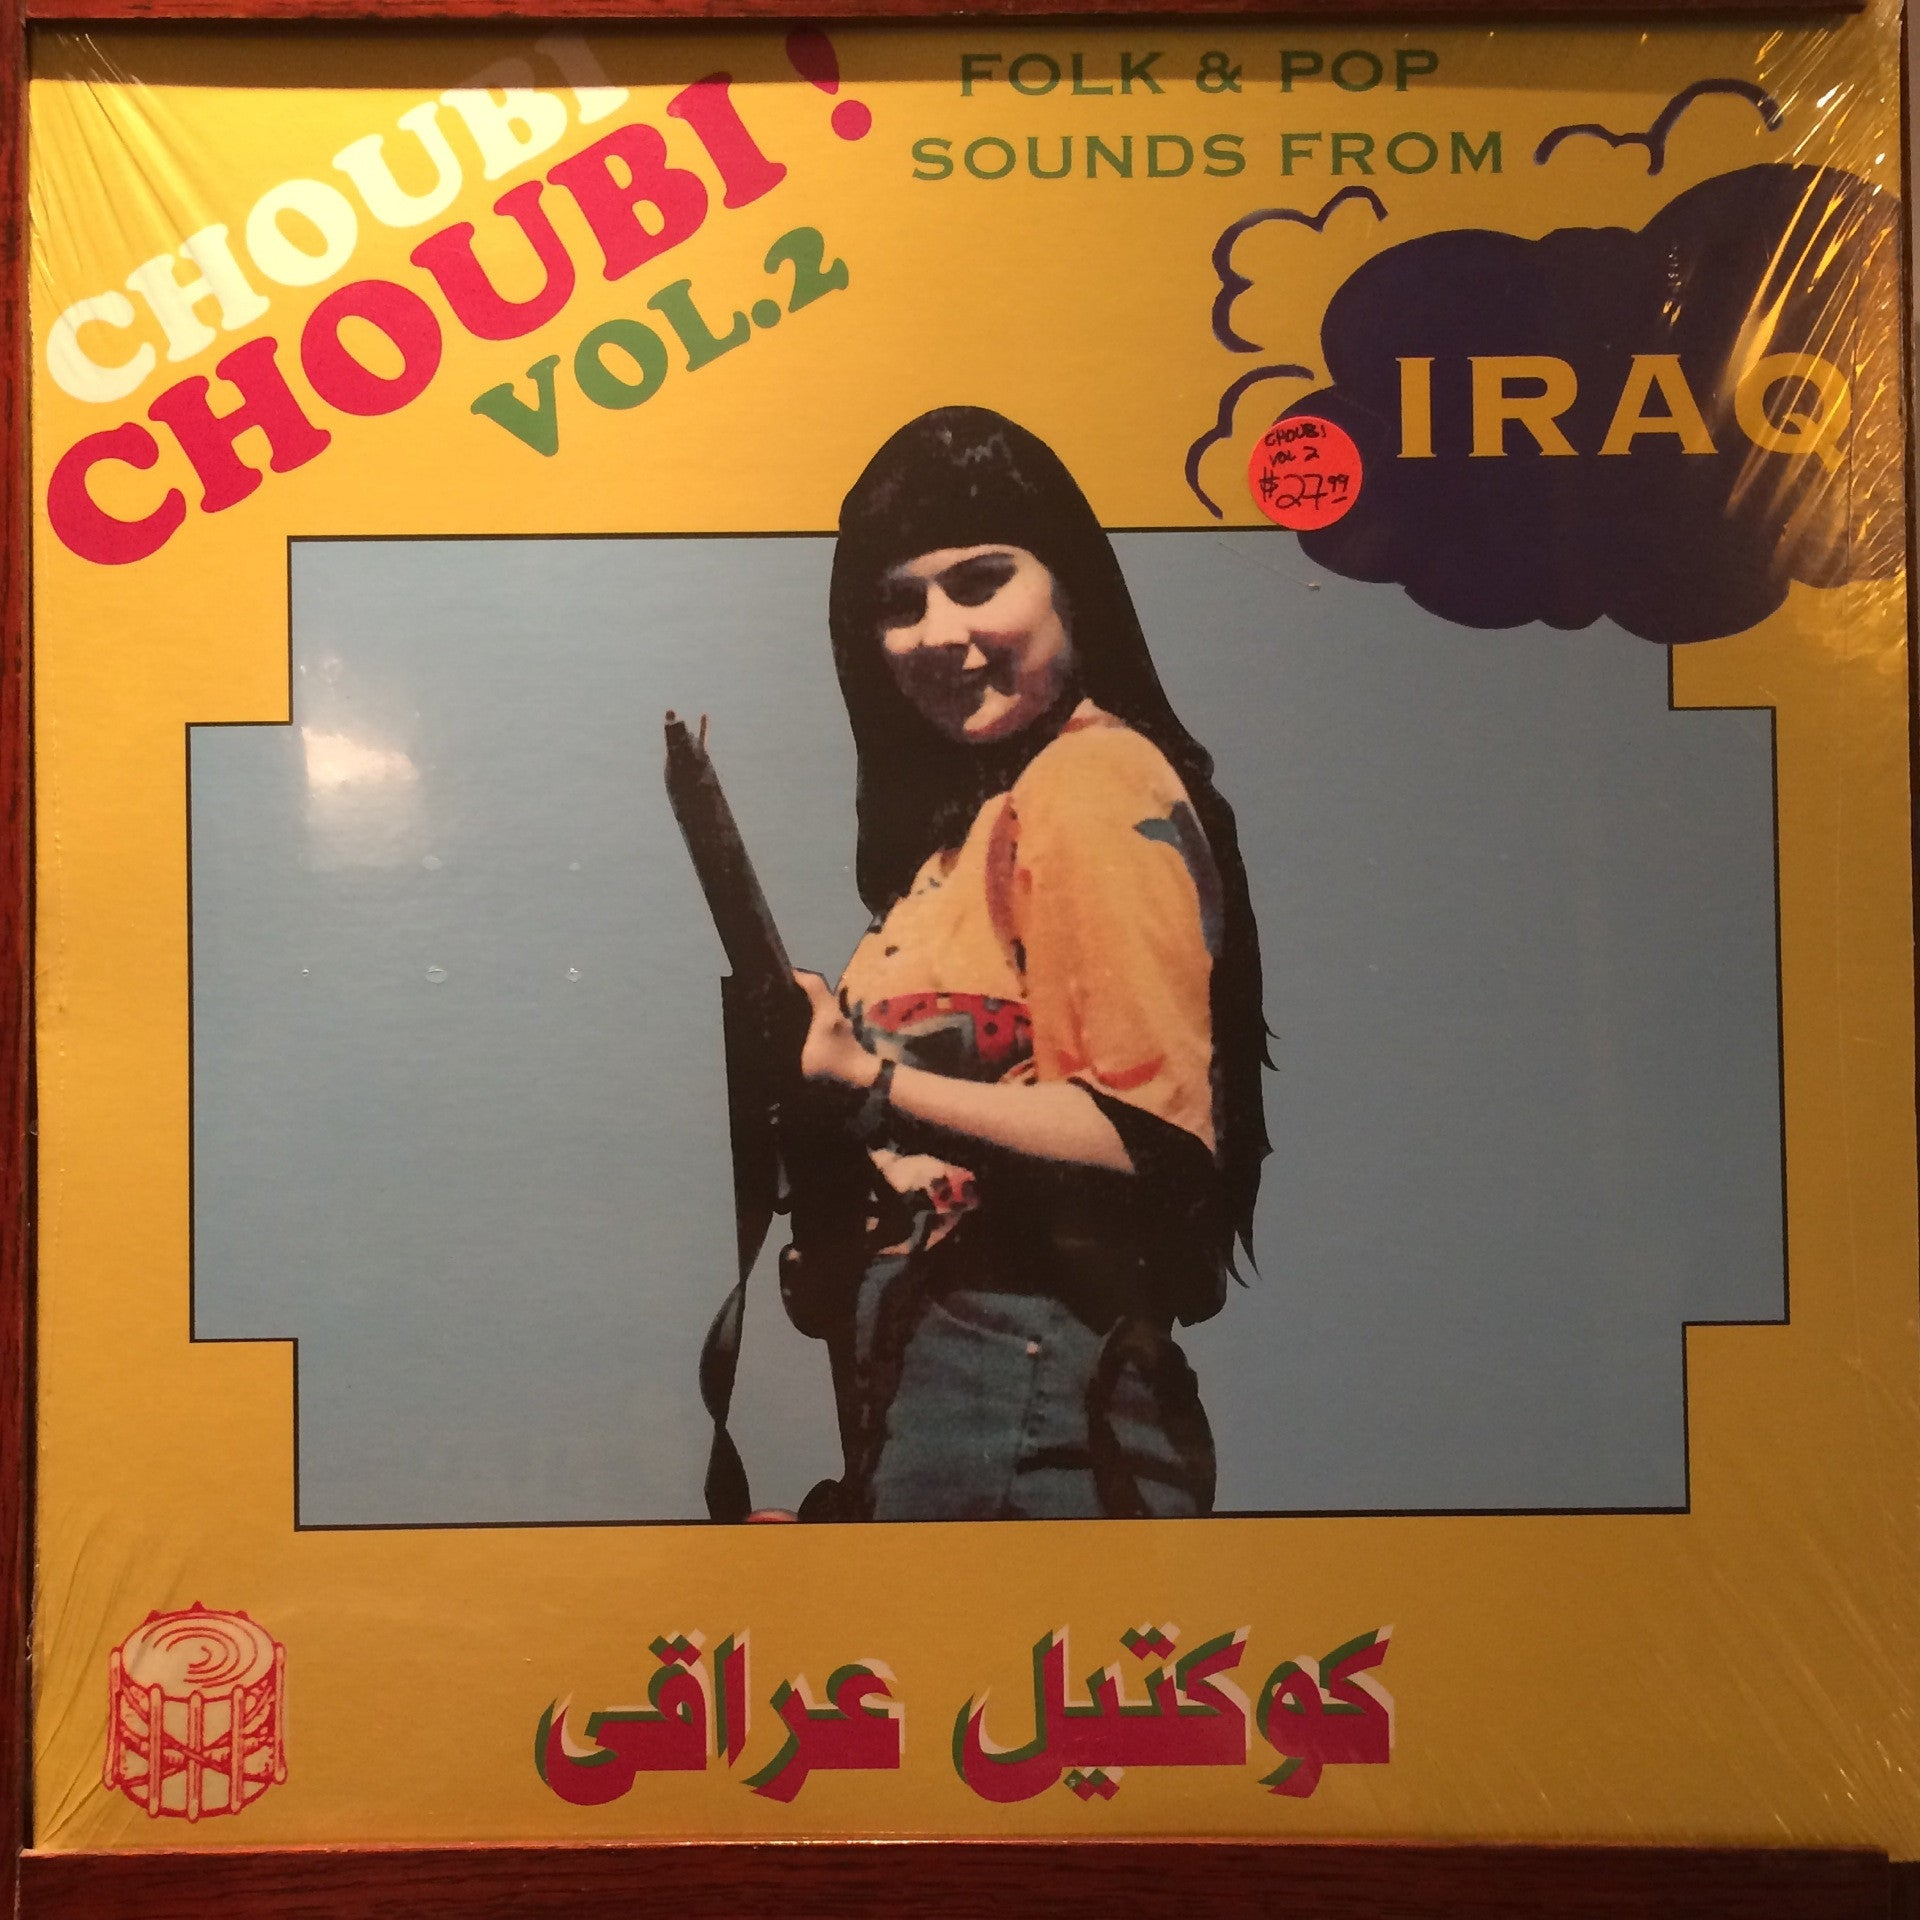 Choubi Choubi! Folk And Pop Sounds Of Iraq Vol 2 LP